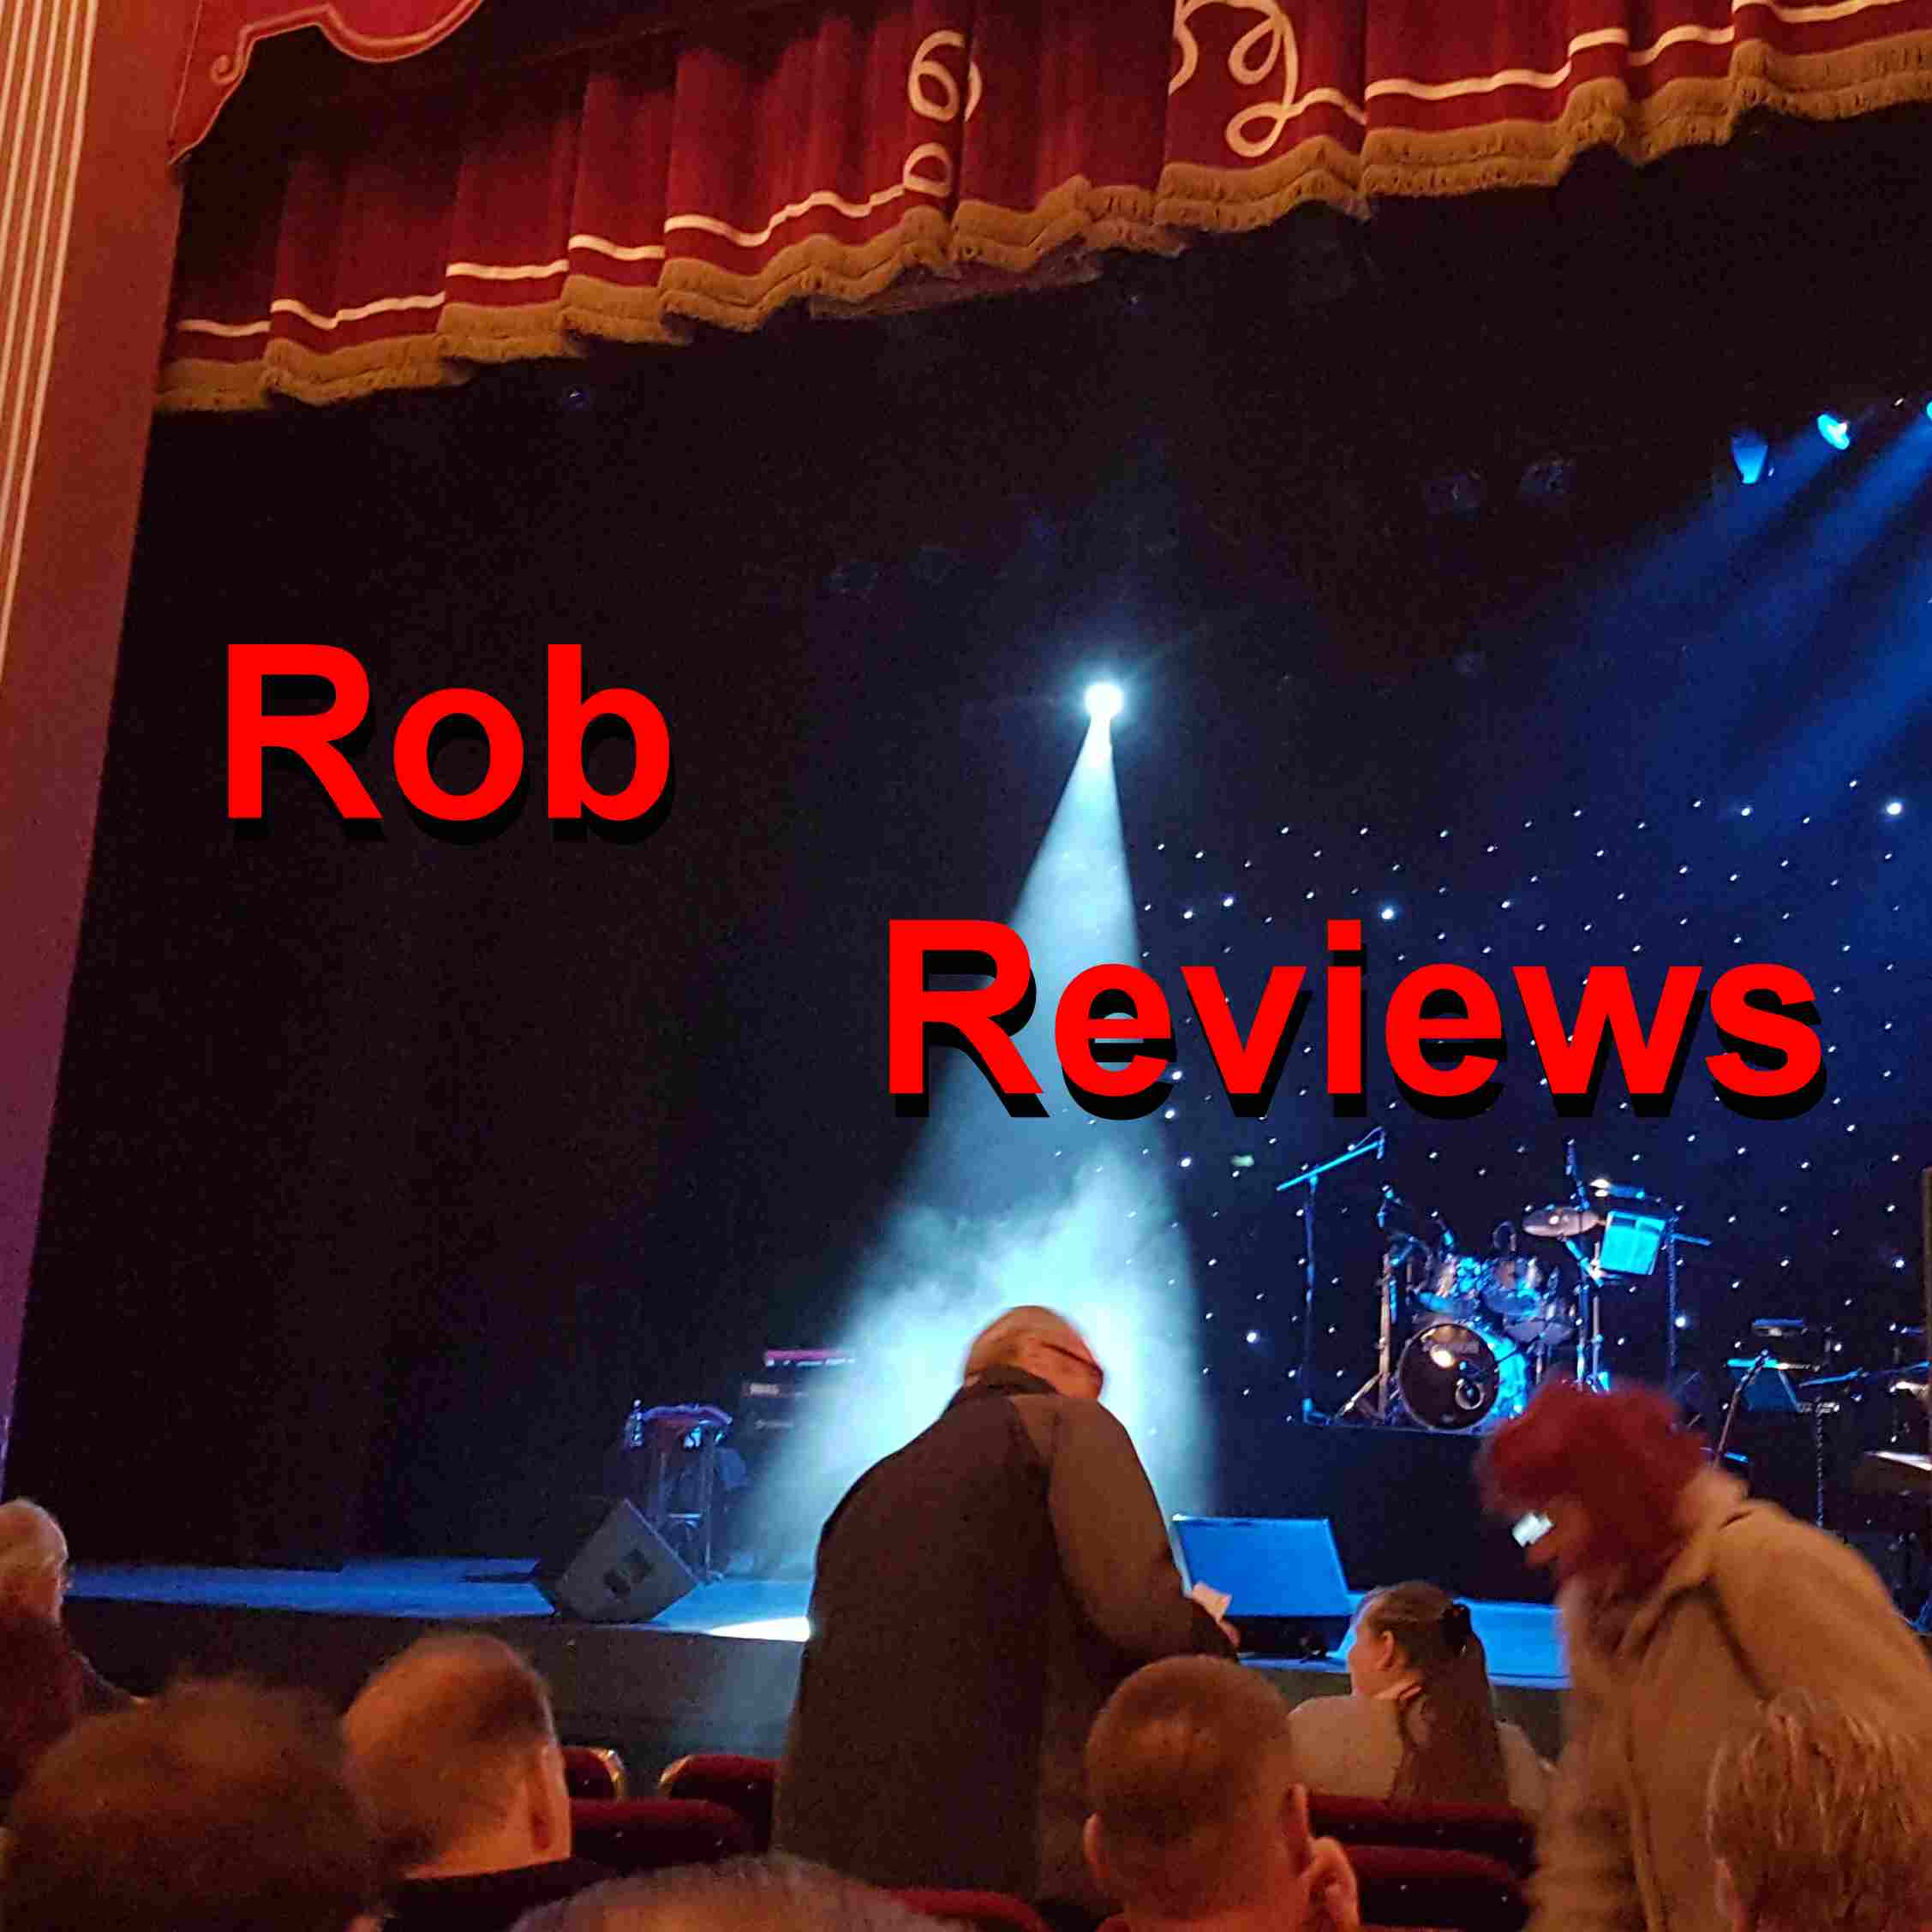 Rob Reviews